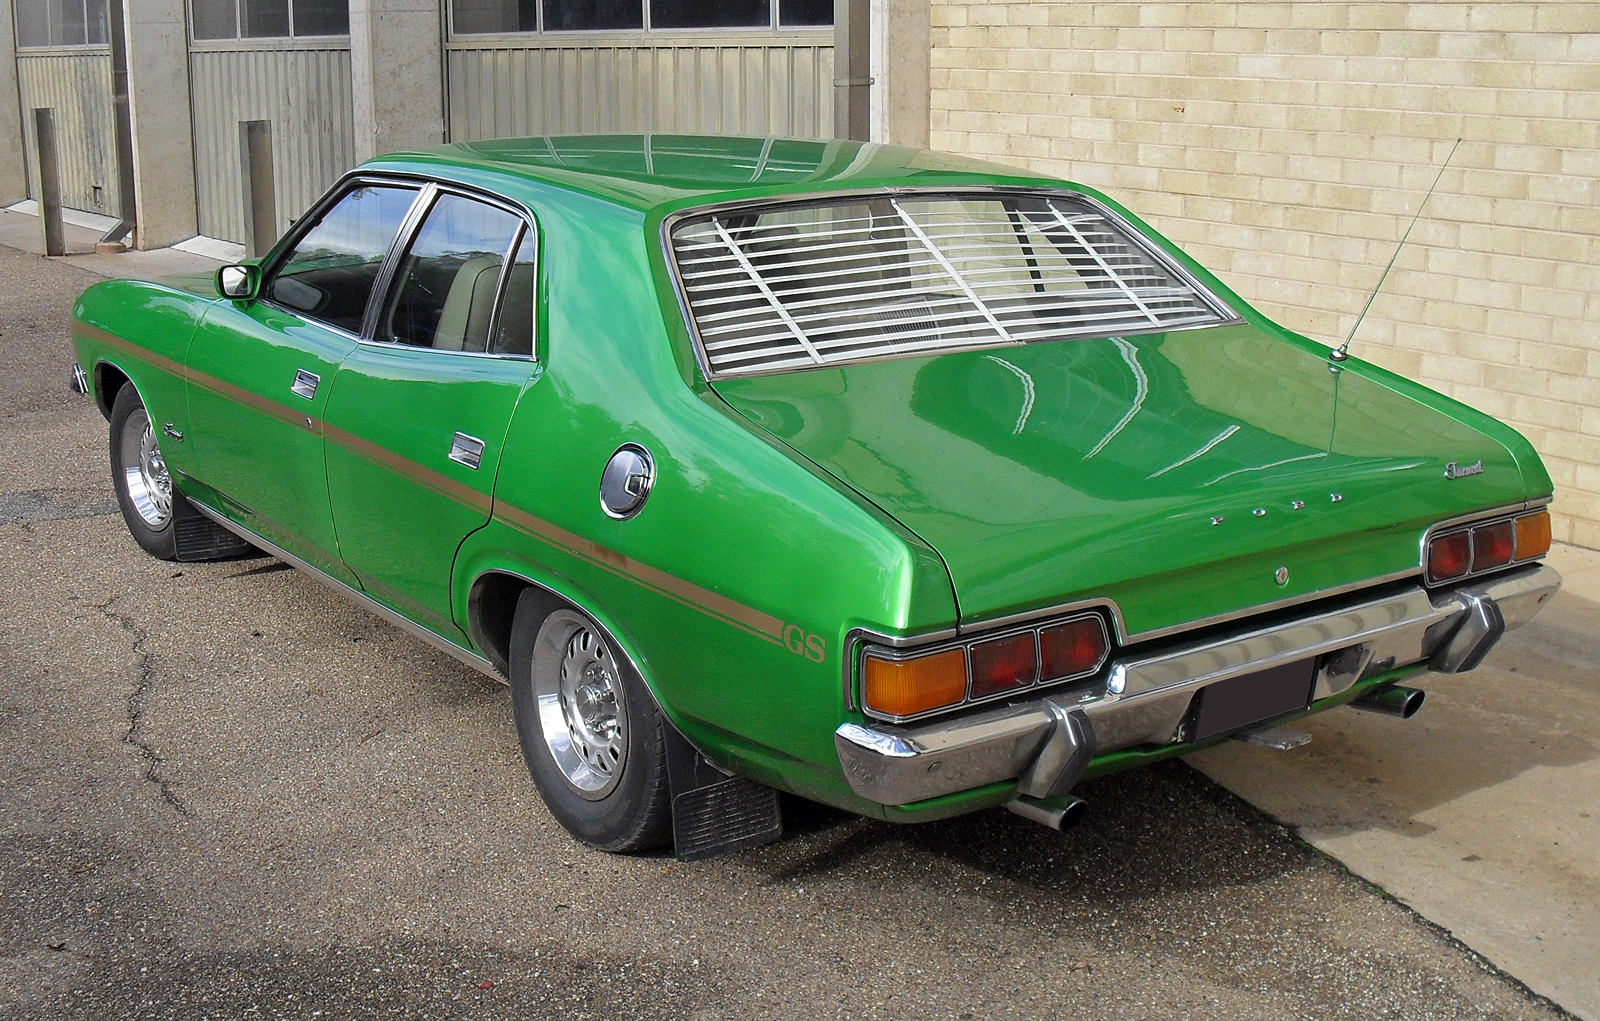 Xa Falcon Gt Ho Phase Iv Was It Destined To Fail At Bathurst furthermore Ford11 as well XAute4 also Ferrarif40 together with Ford11. on ford falcon xb